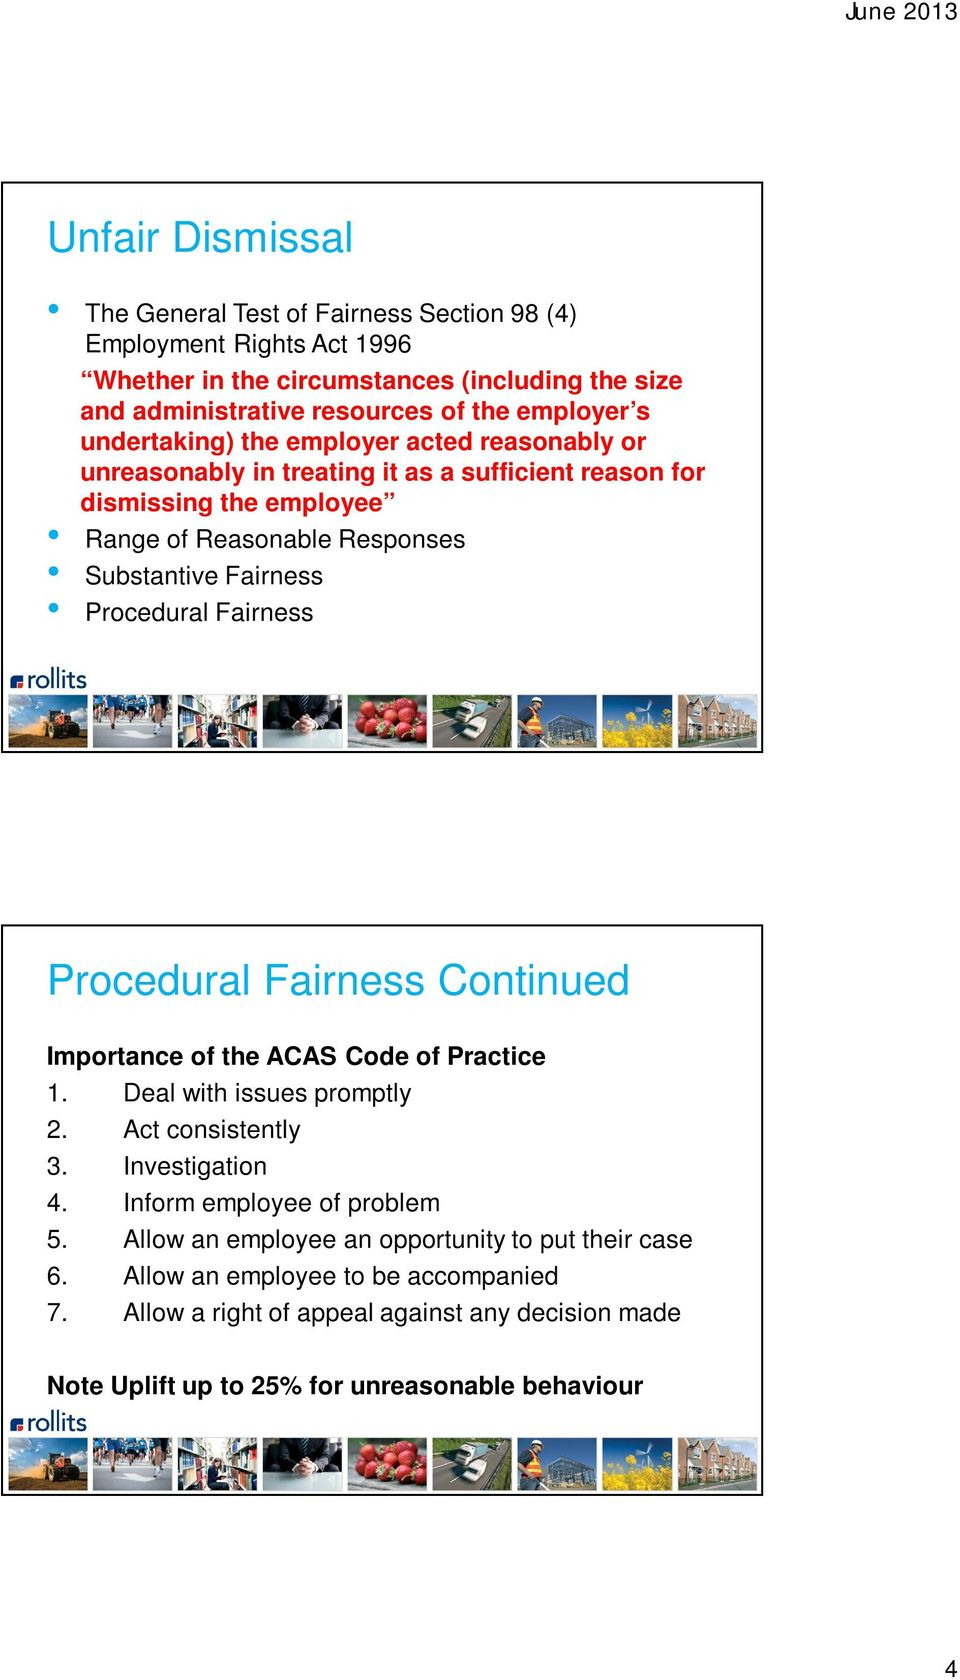 Procedural Fairness Procedural Fairness Continued Importance of the ACAS Code of Practice 1. Deal with issues promptly 2. Act consistently 3. Investigation 4.